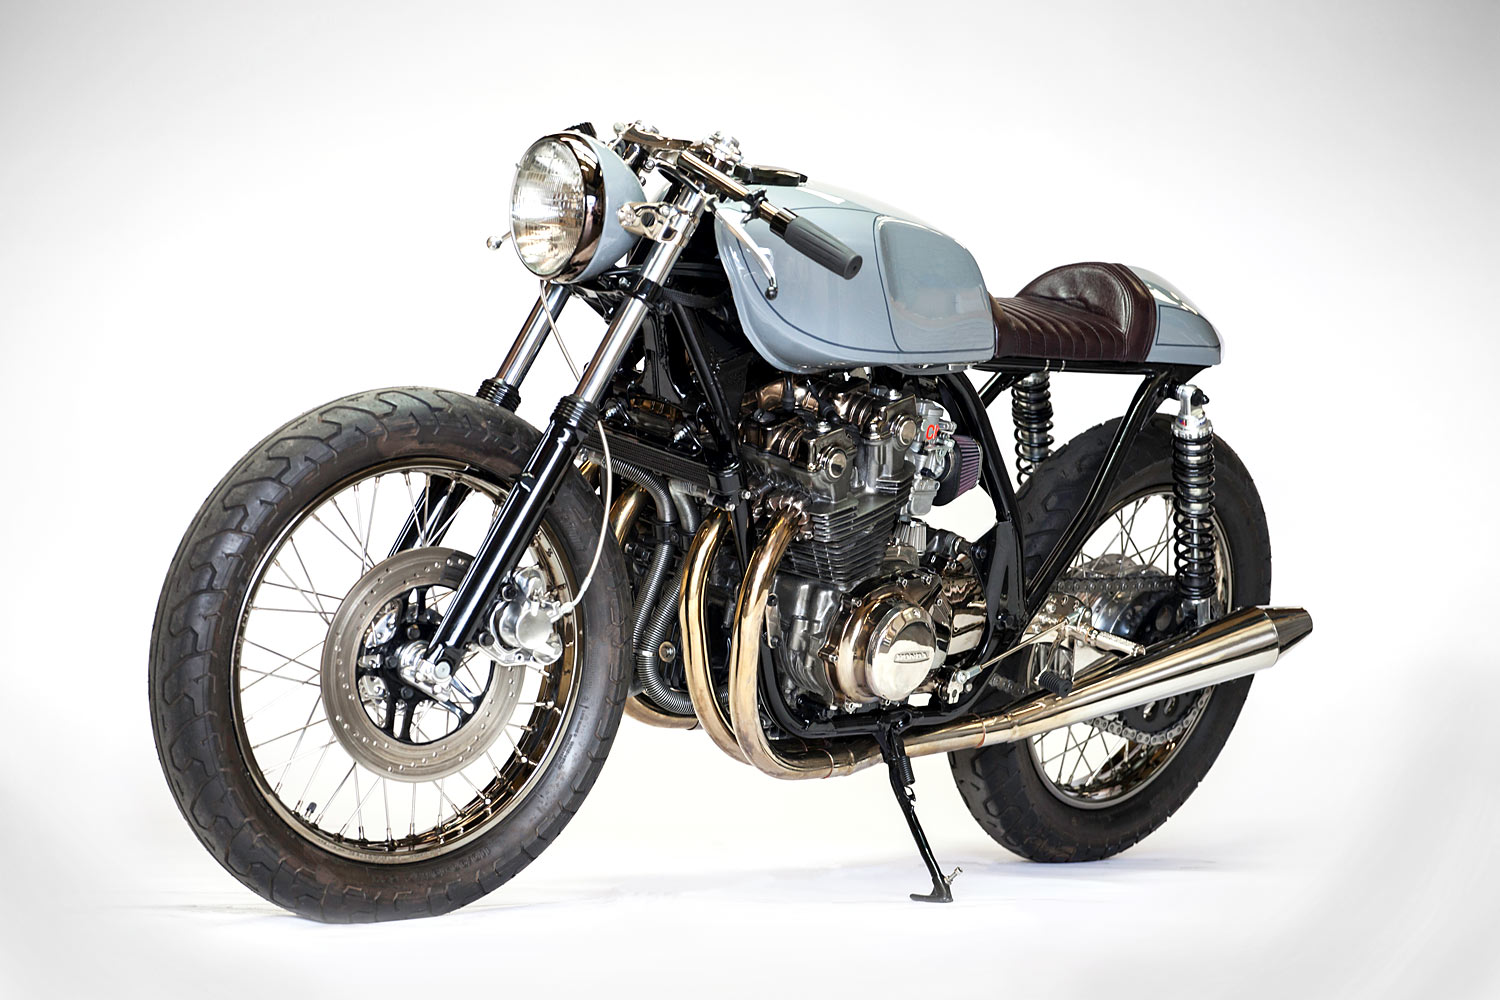 Ten Buck Coffee Kott Motorcycles 79 Honda Cb750 Cafe Racer 1970 Cb750f 2 From Californias A Sublime Transformation Of 1979 Dohc